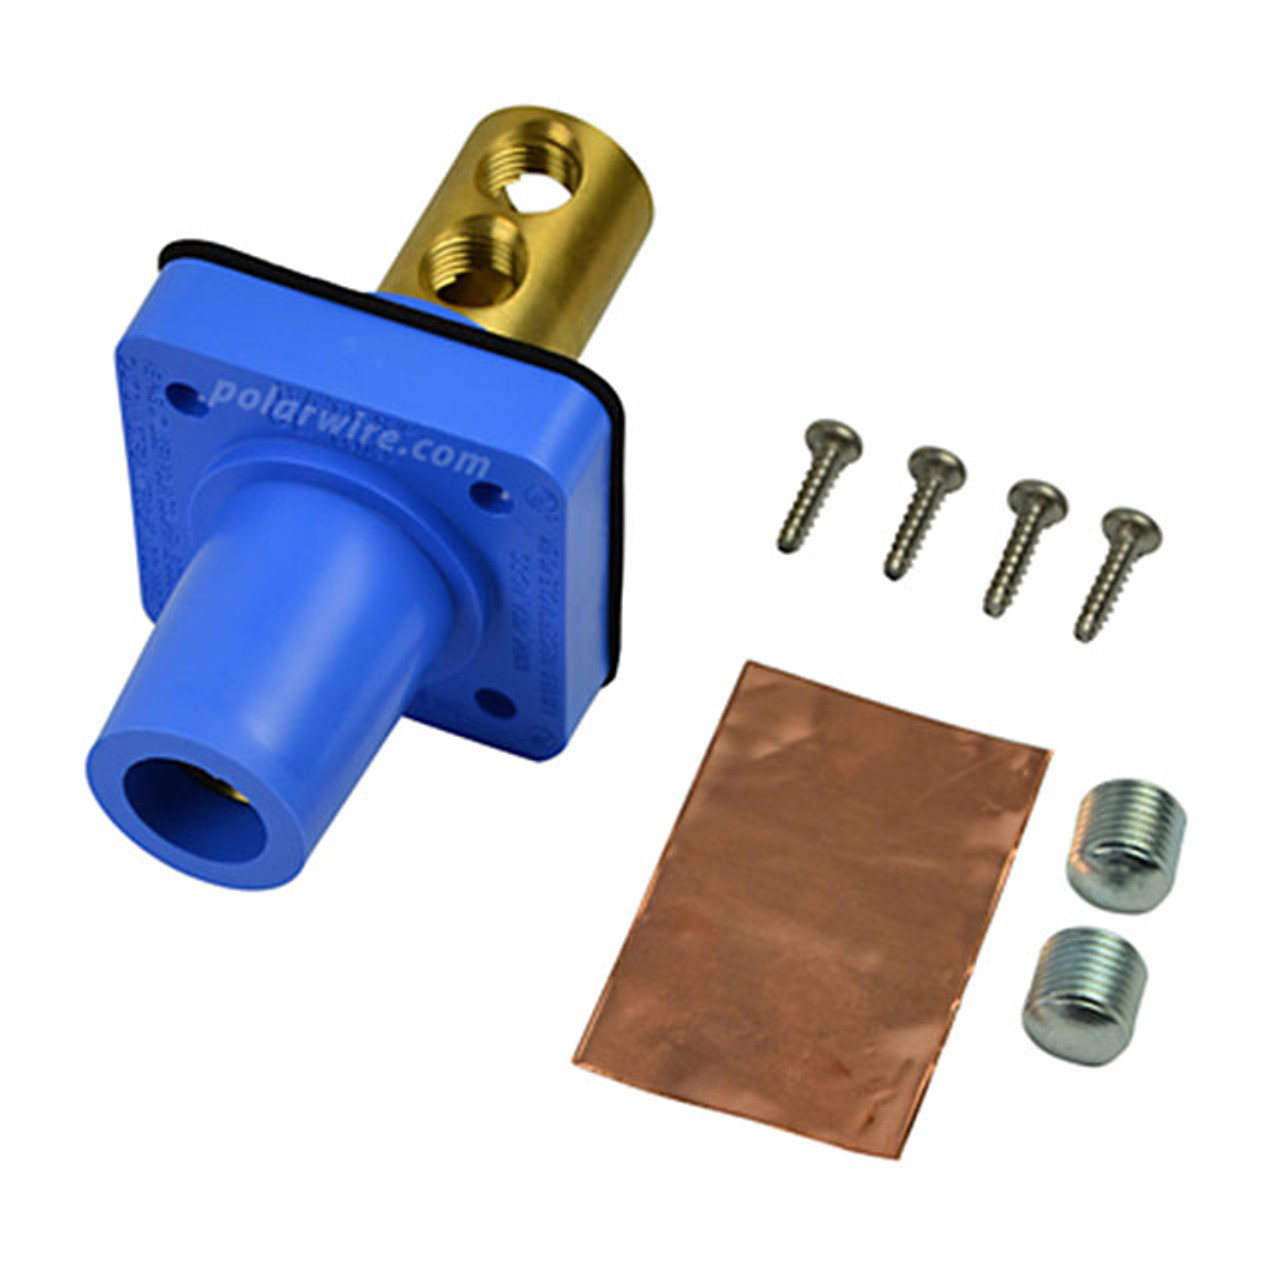 Marinco blue 400A CL 16 Series female single pin panel mount cam lock connector with set screw for 2-2/0 AWG cable